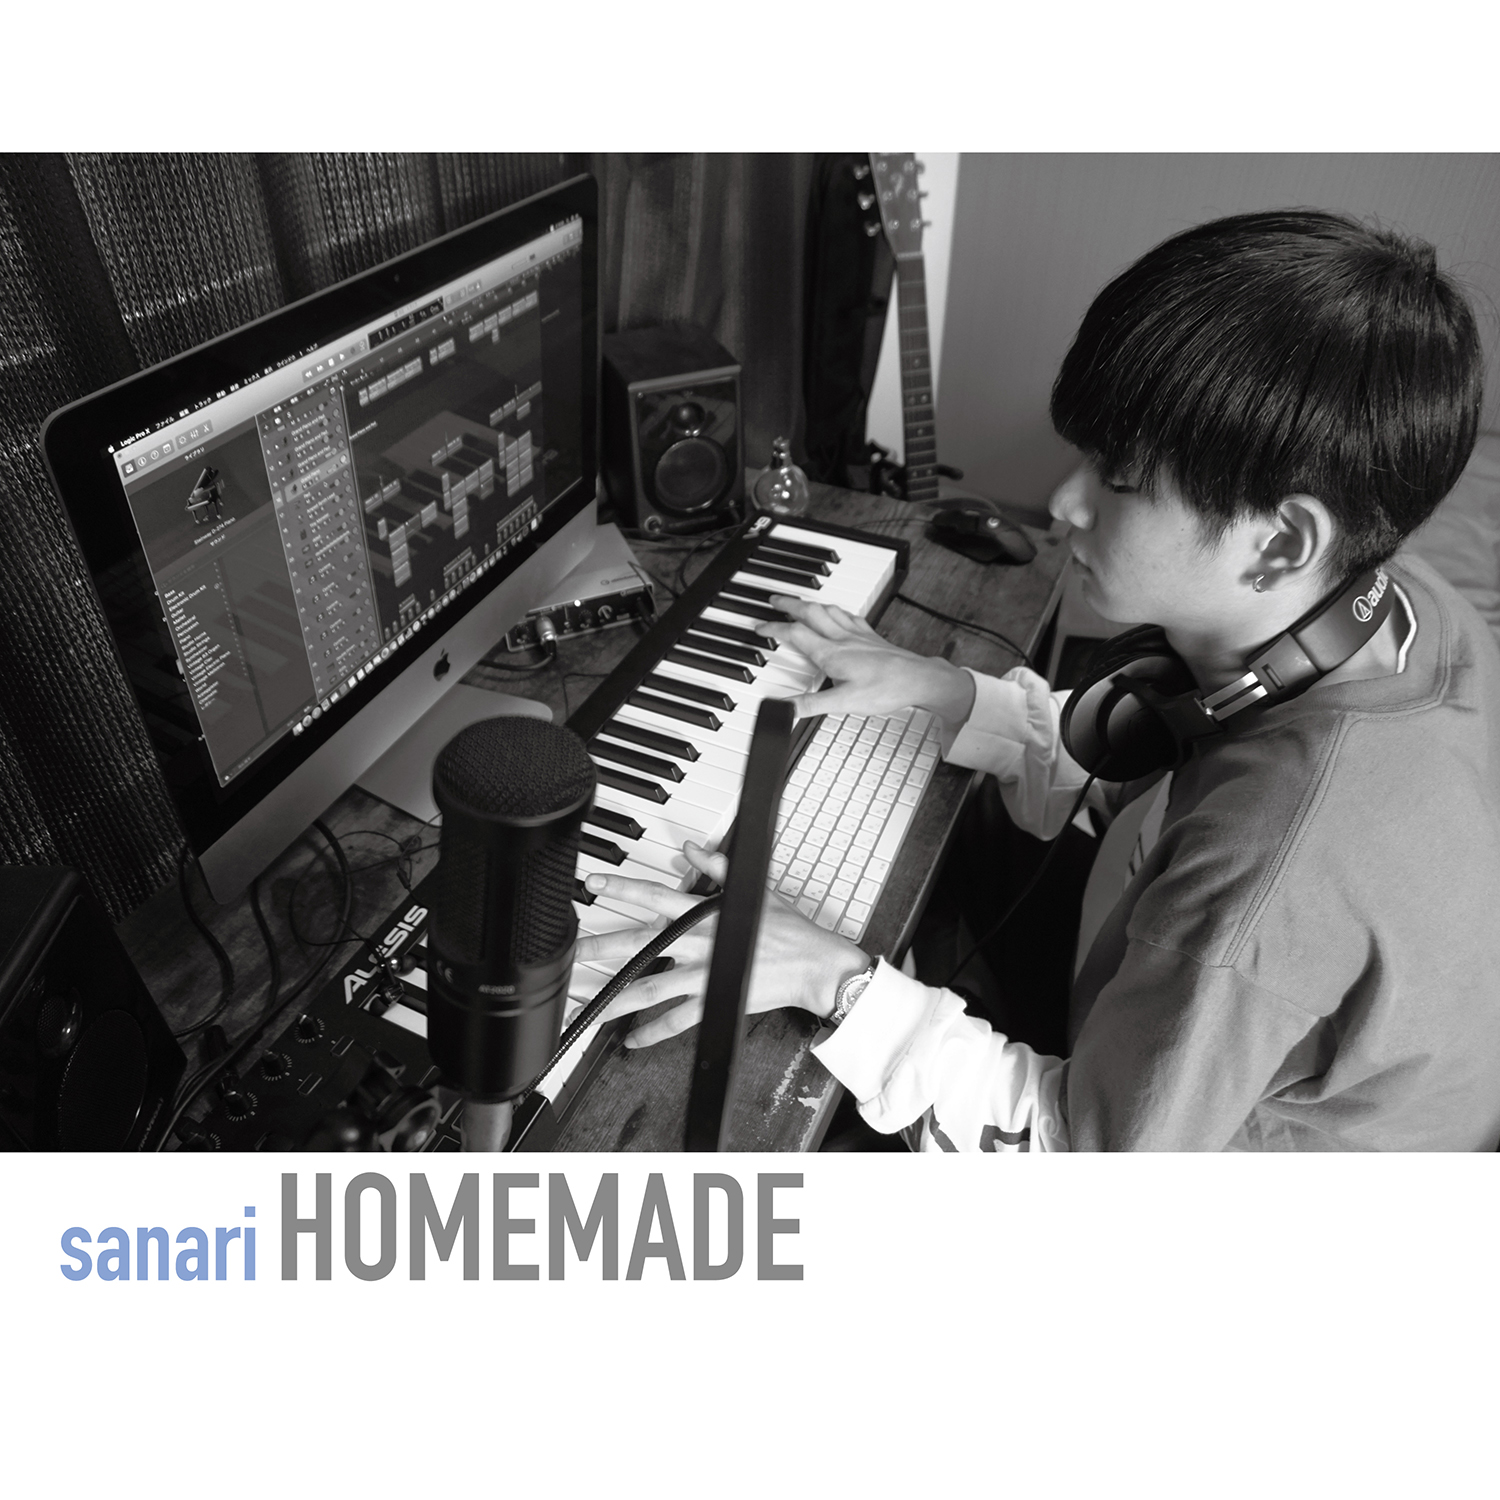 「HOMEMADE」